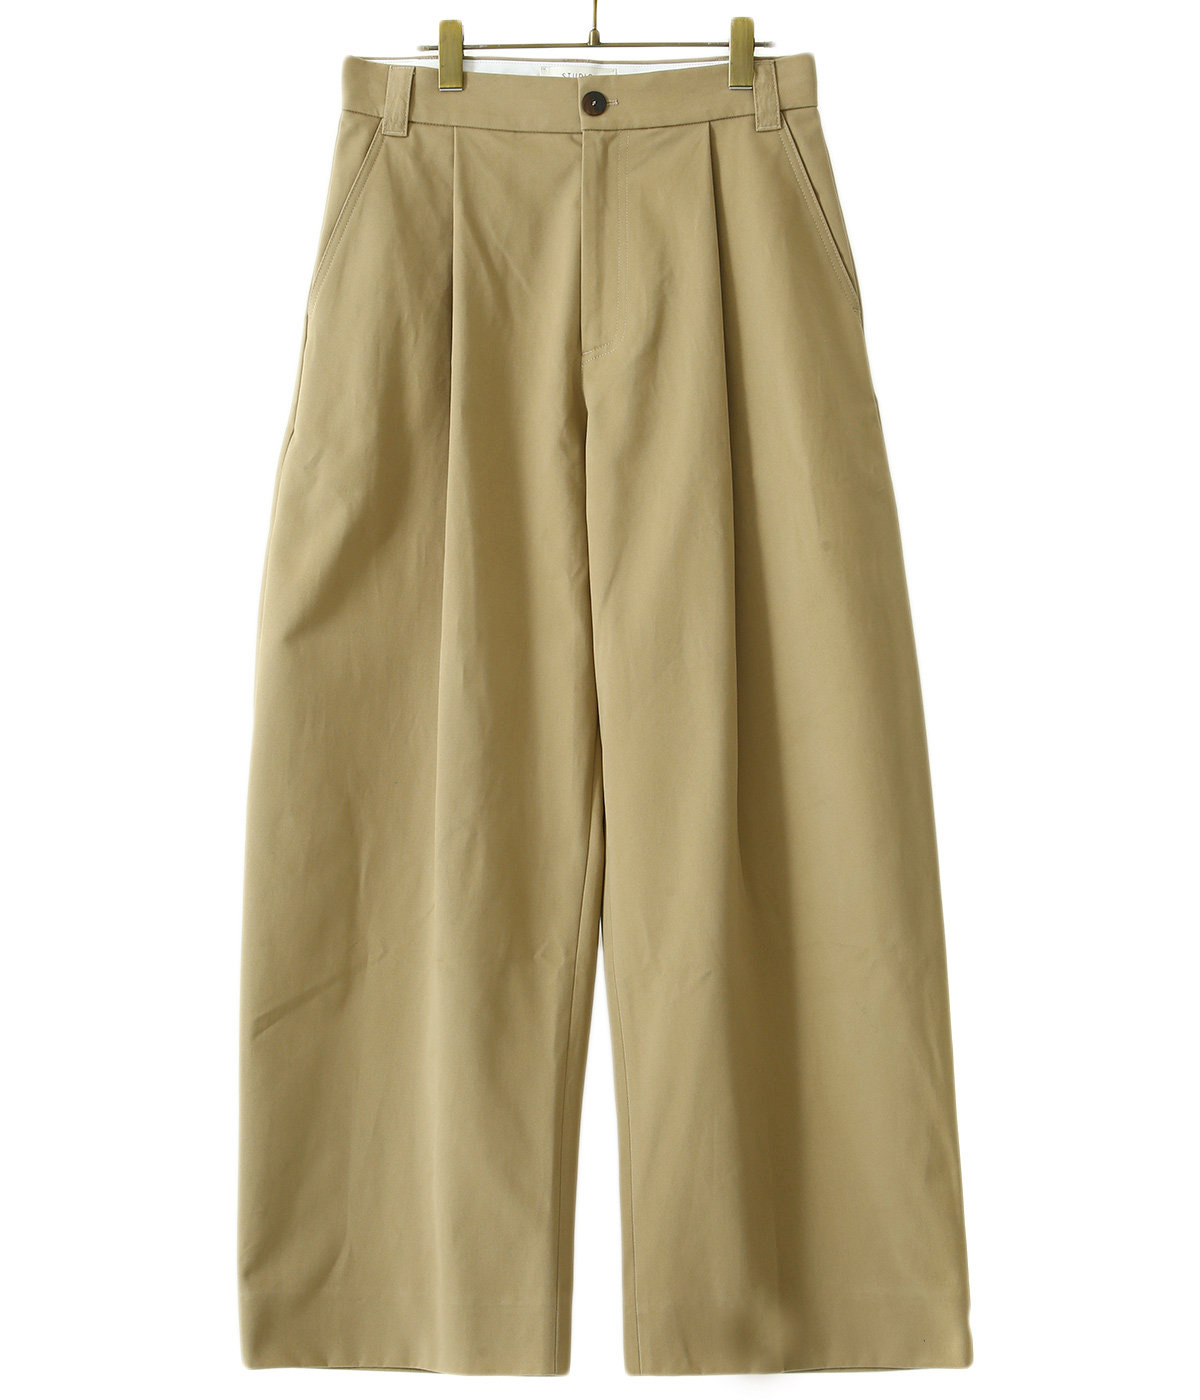 SORTE PEACHED COTTON TWILL VOLUME PLEAT PANTS